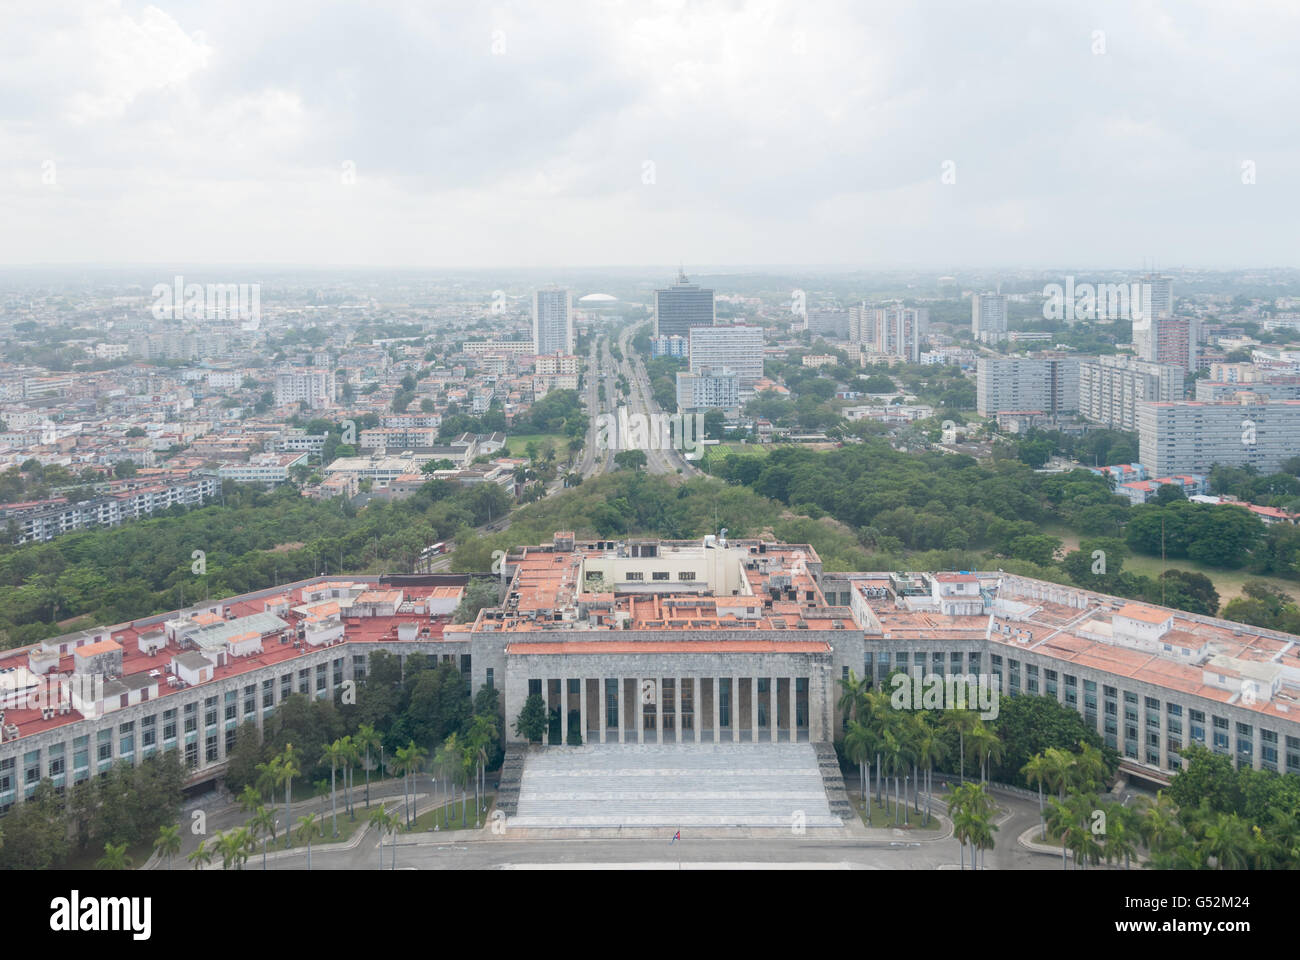 Cuba, Havana, view from the monument José Martí in the direction of Comité Central del Partido - Stock Image